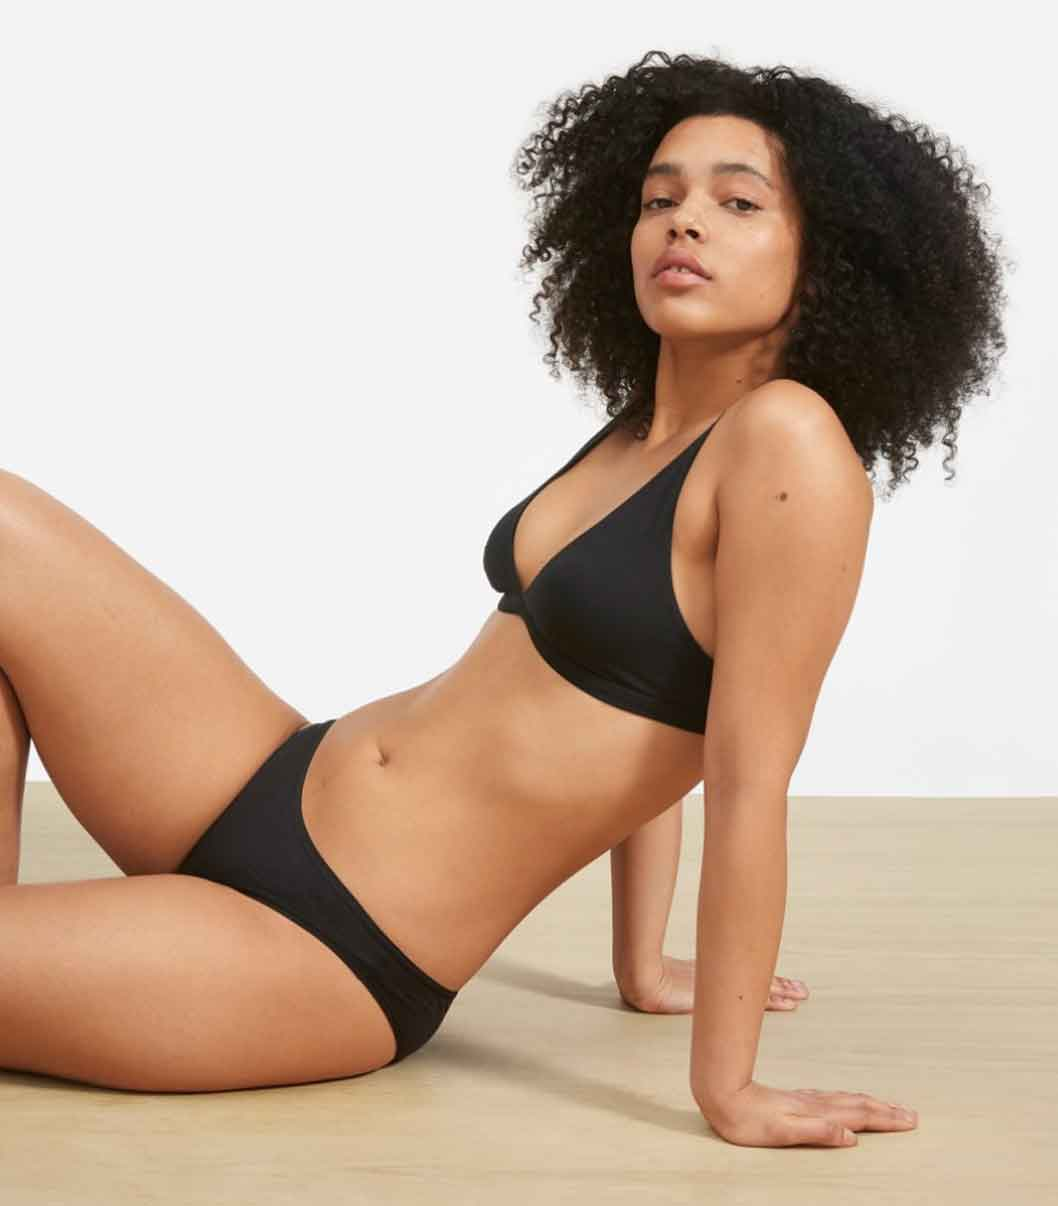 EVERLANE BASICS UNDERWEAR SUSTAINABLE FASHION BRAND good fashion guide ECOLOOKBOOK